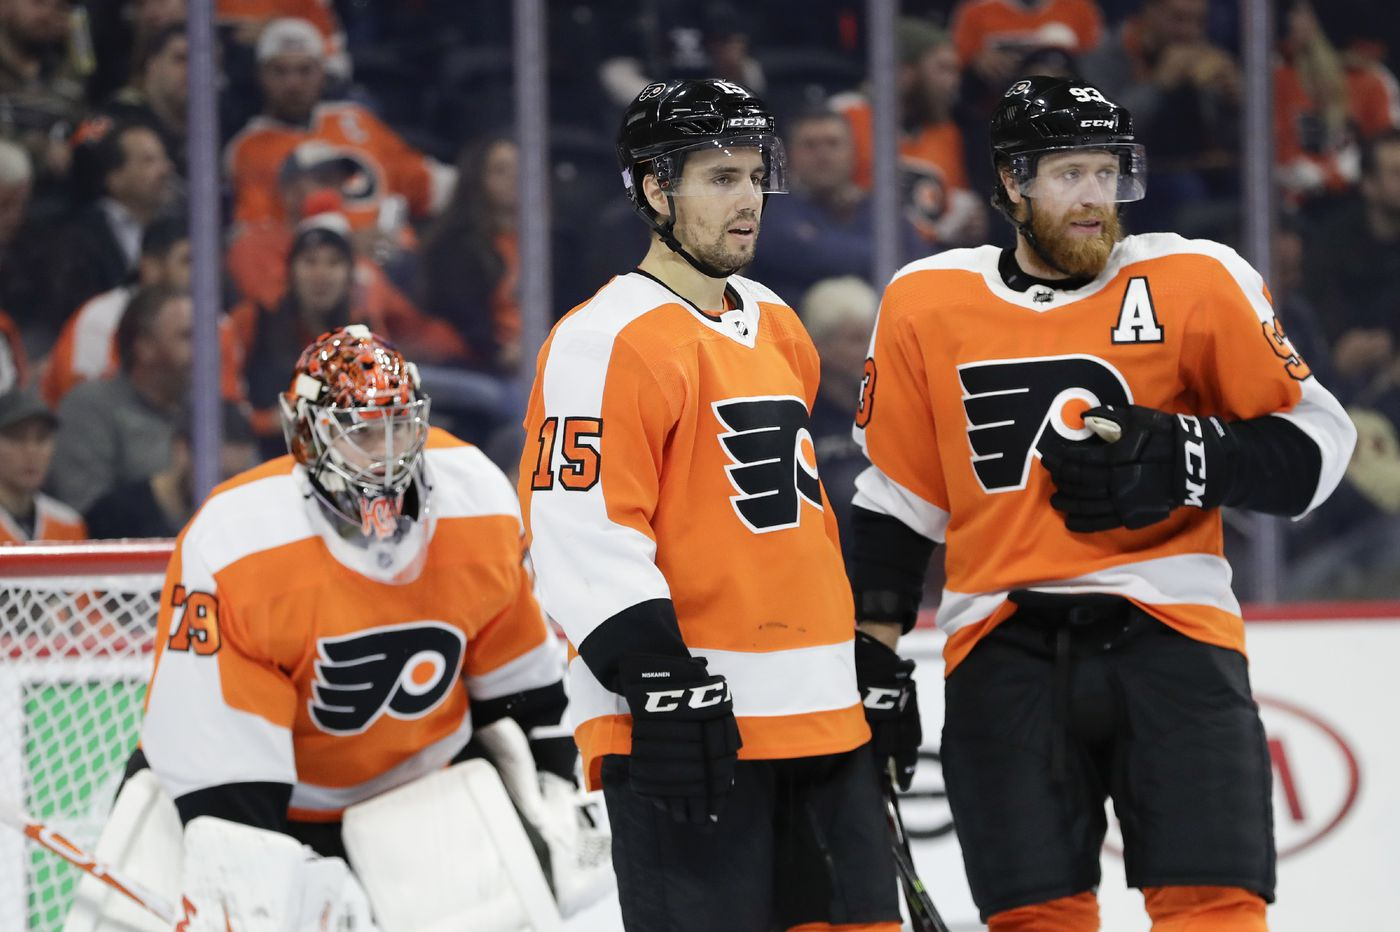 Flyers should not chase top seed in NHL round-robin games | Marcus Hayes